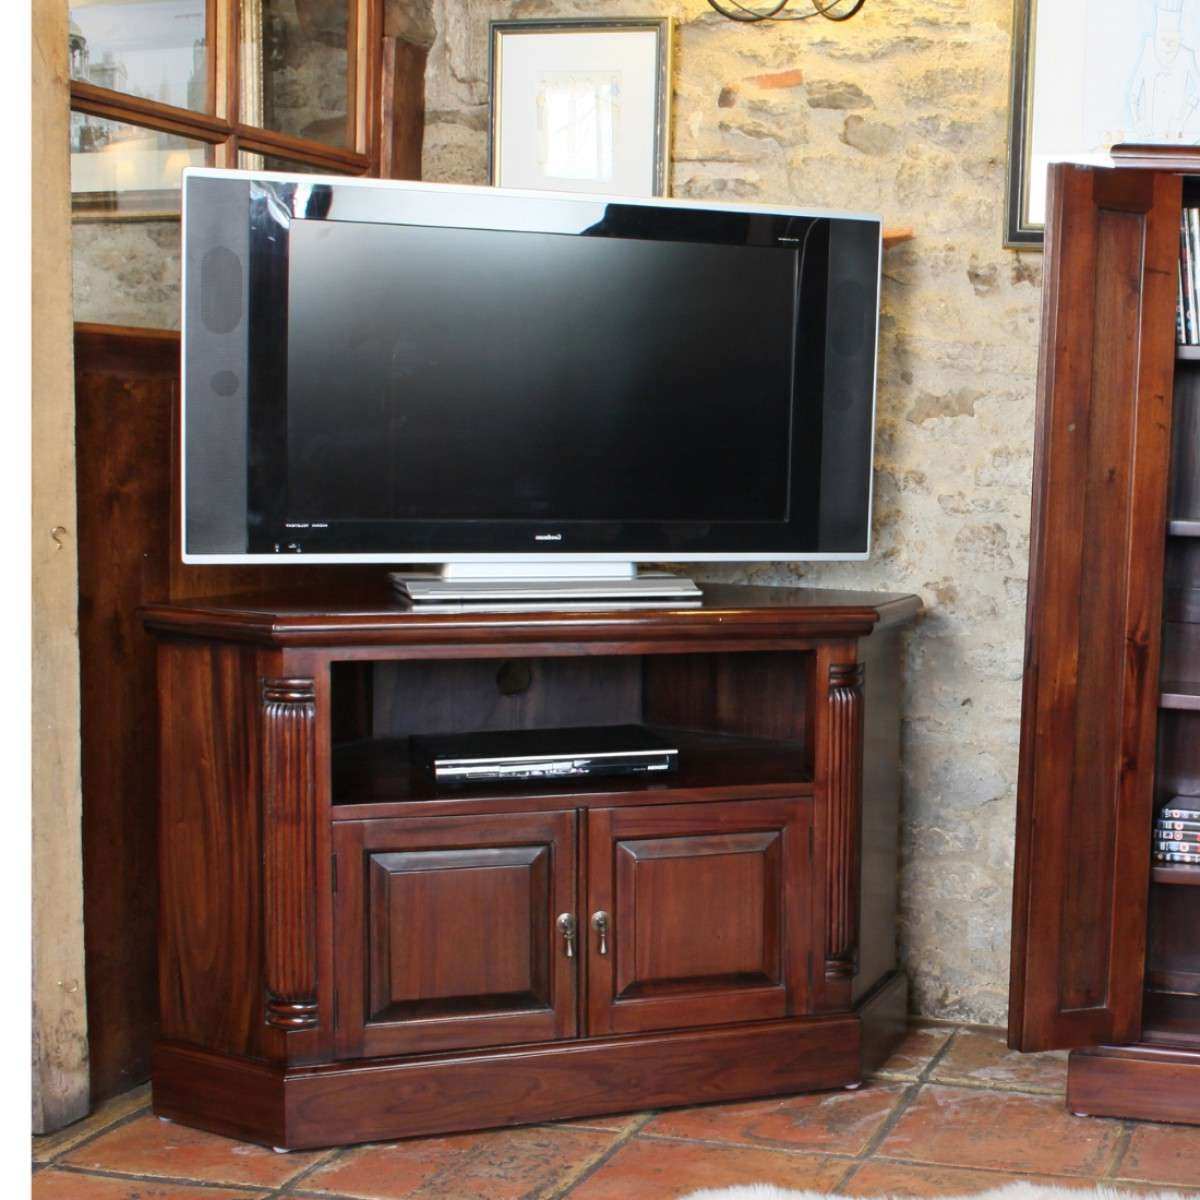 Baumhaus La Roque Mahogany Corner Tv Cabinet Imr09B For Mahogany Corner Tv Cabinets (View 5 of 20)